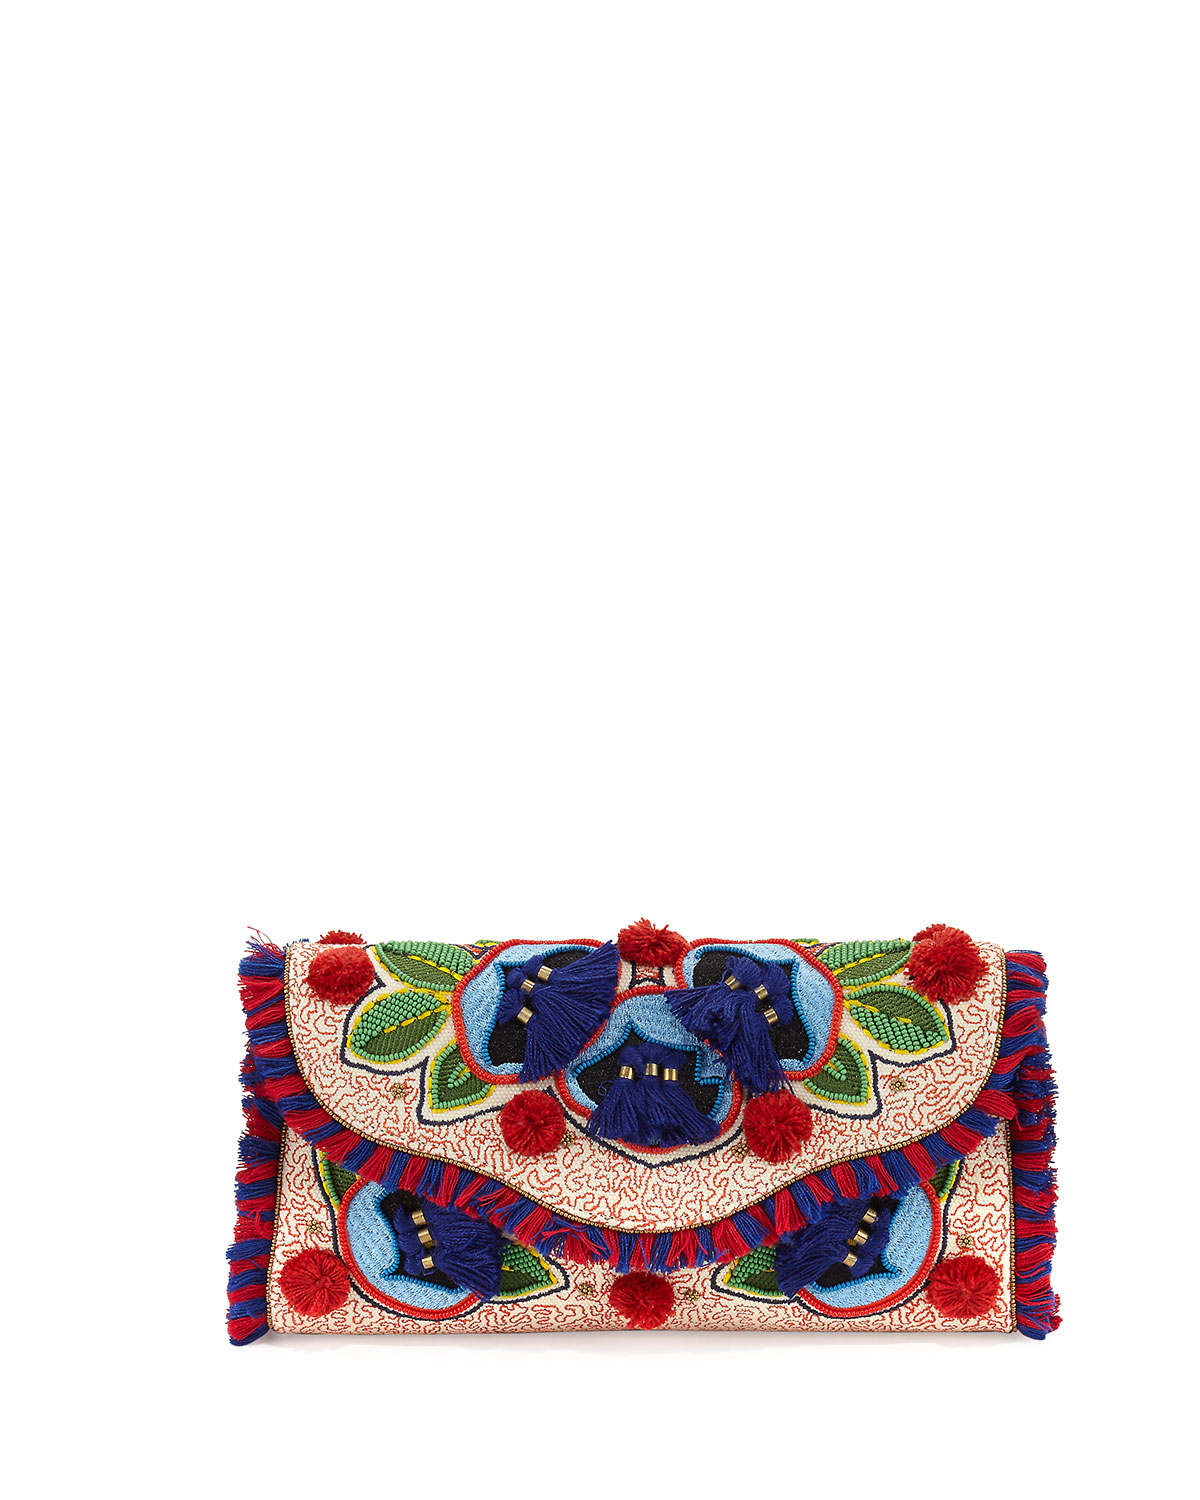 1c5e962434dffb Tory Burch Embroidered Floral Flap Clutch Bag